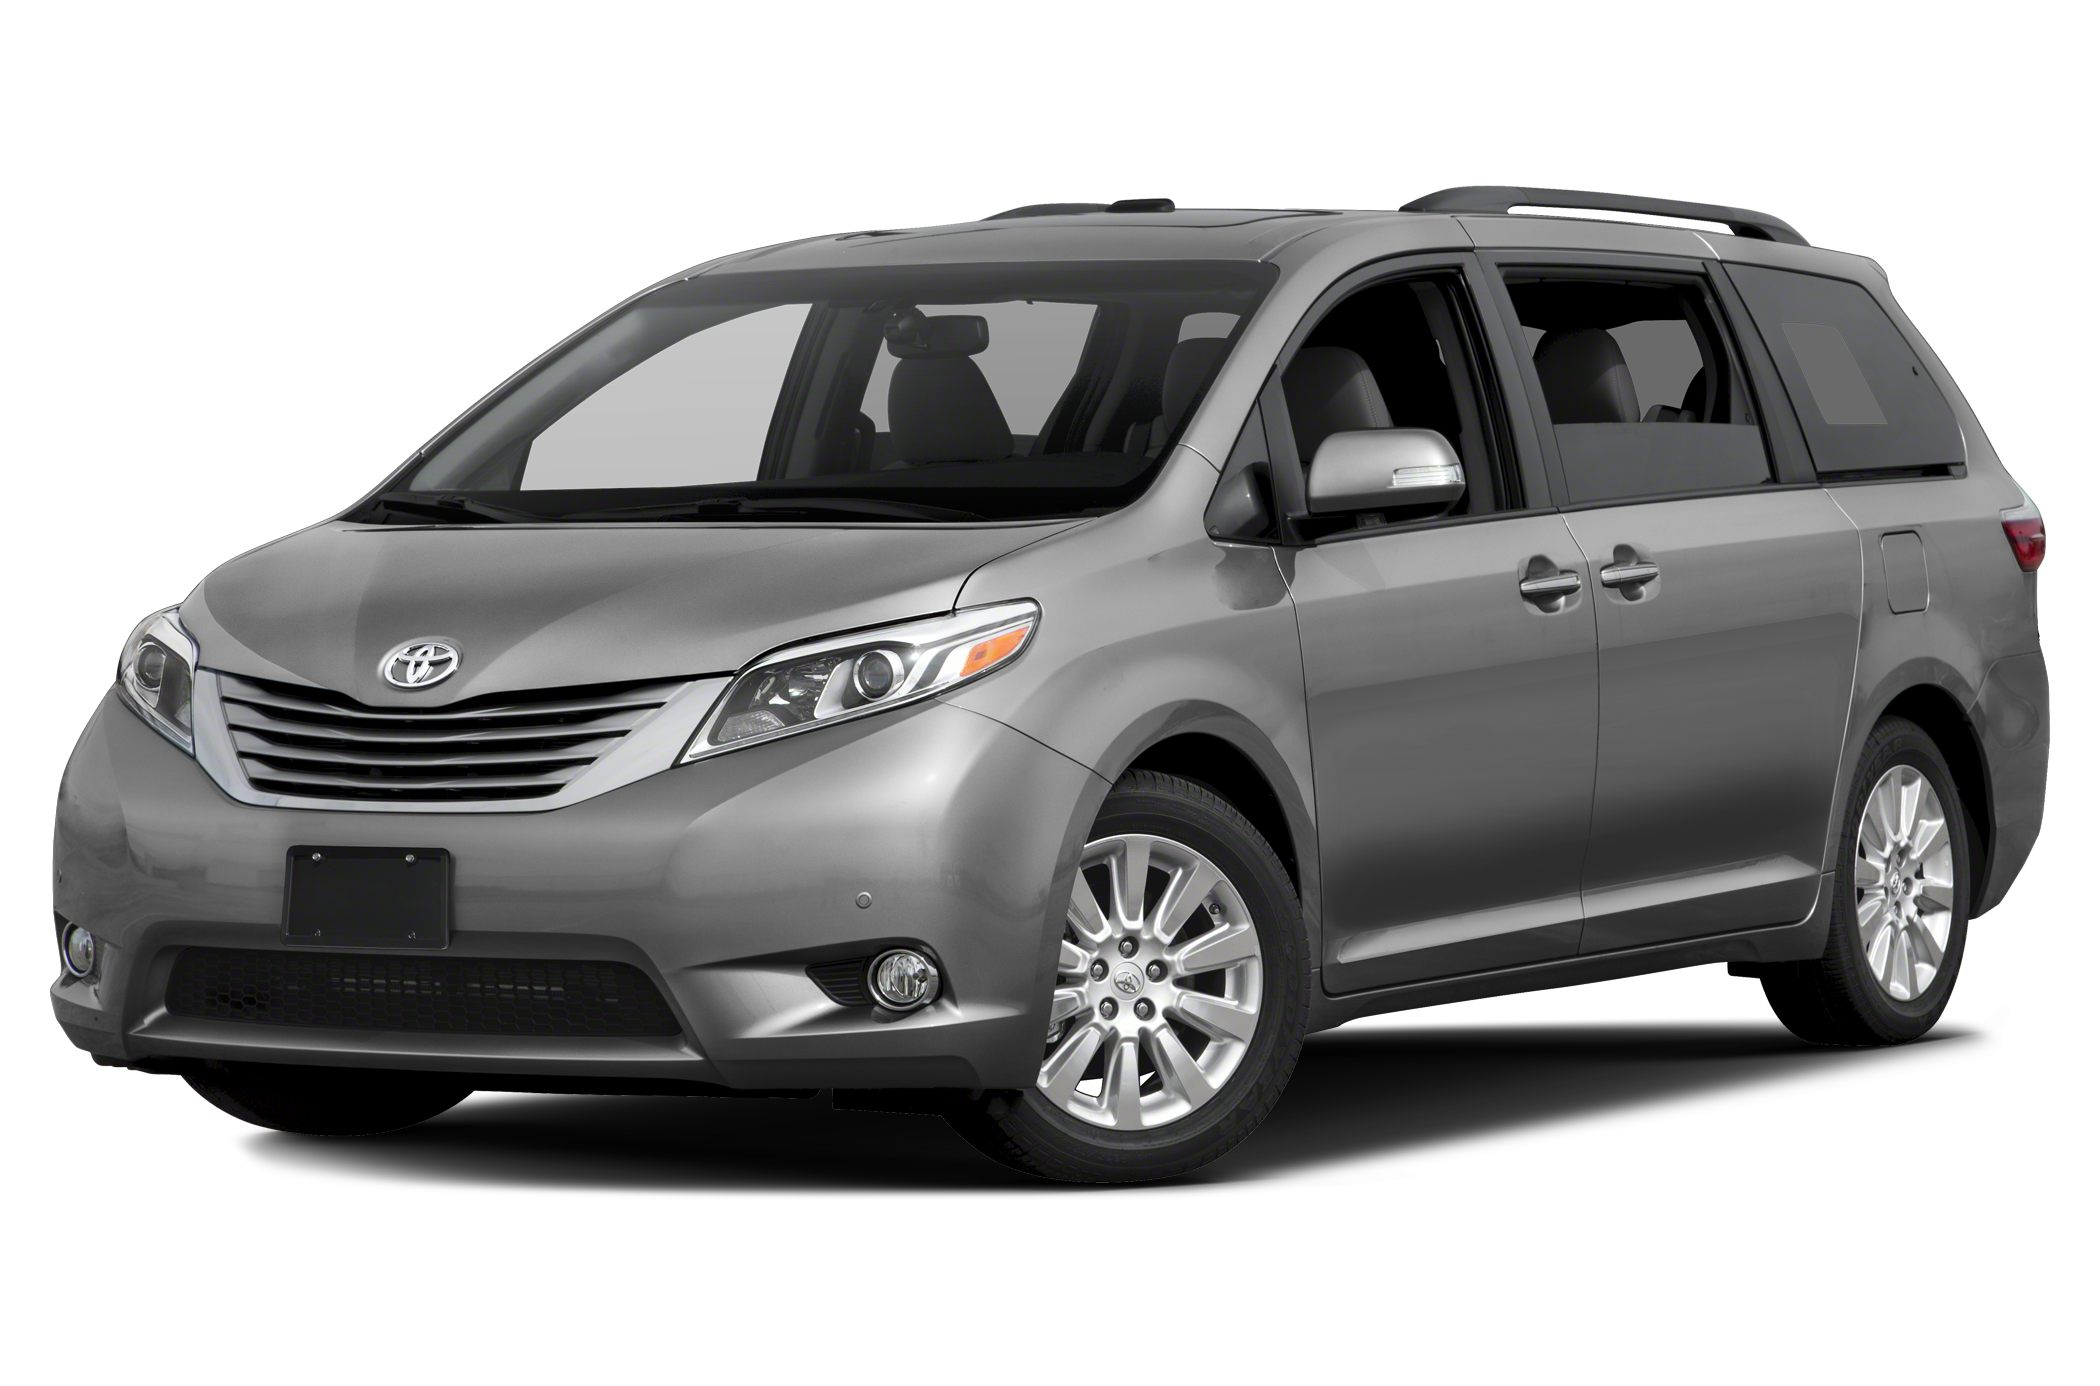 2017 Toyota Sienna Limited Premium 7 Passenger Sunroof 3rd Row Seat Navigation DVD Entertainmen